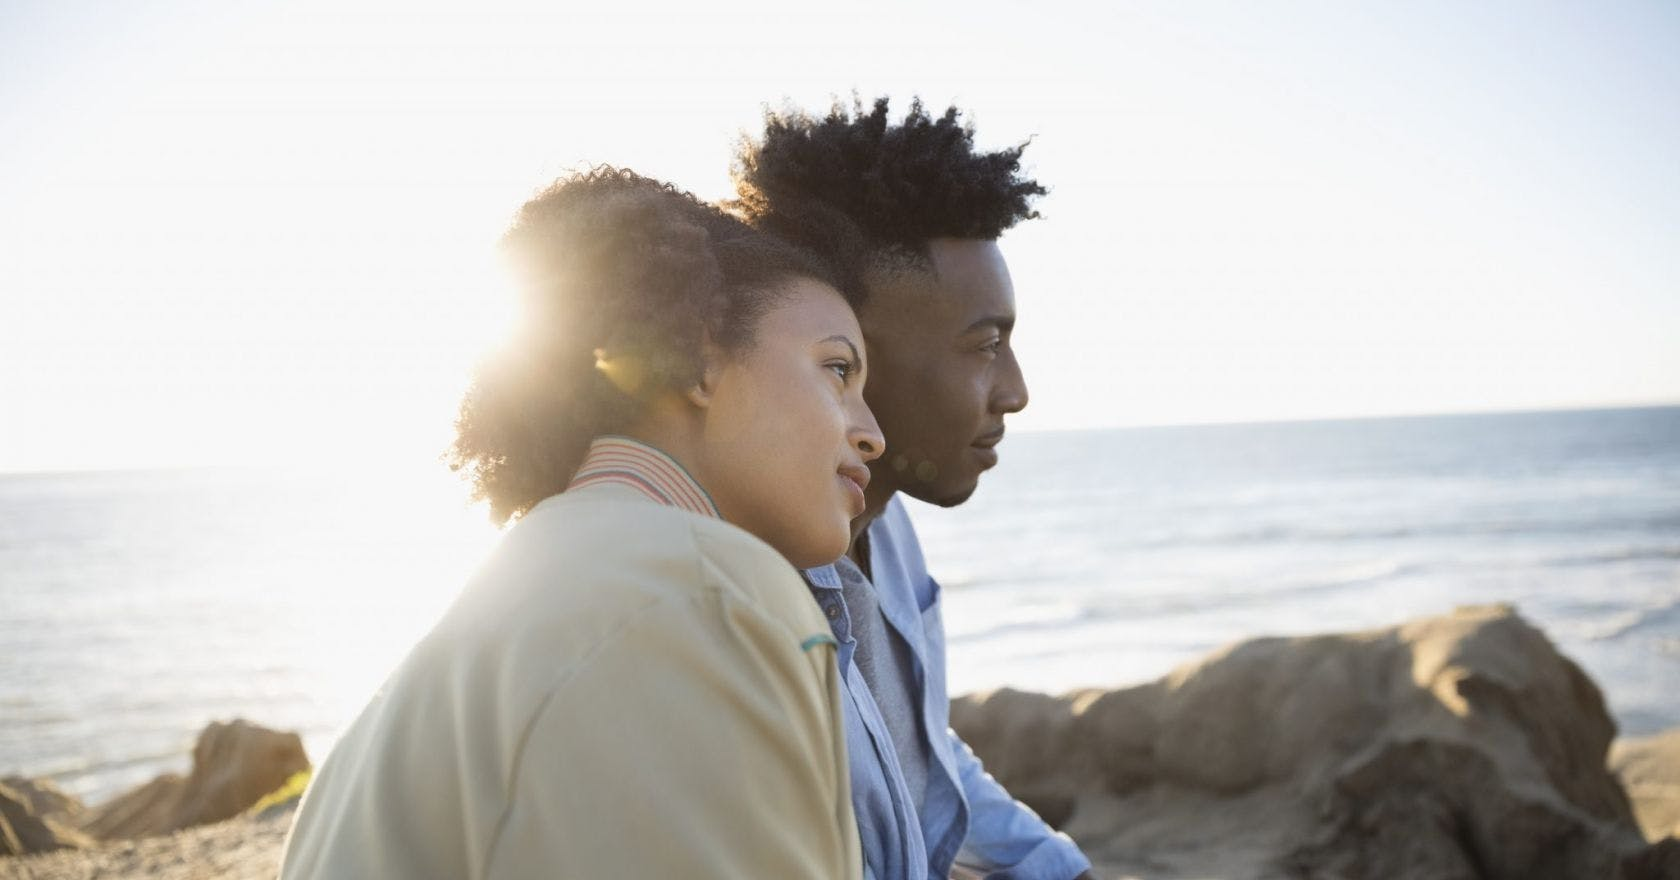 The real reason we stay in relationships that are bad for us